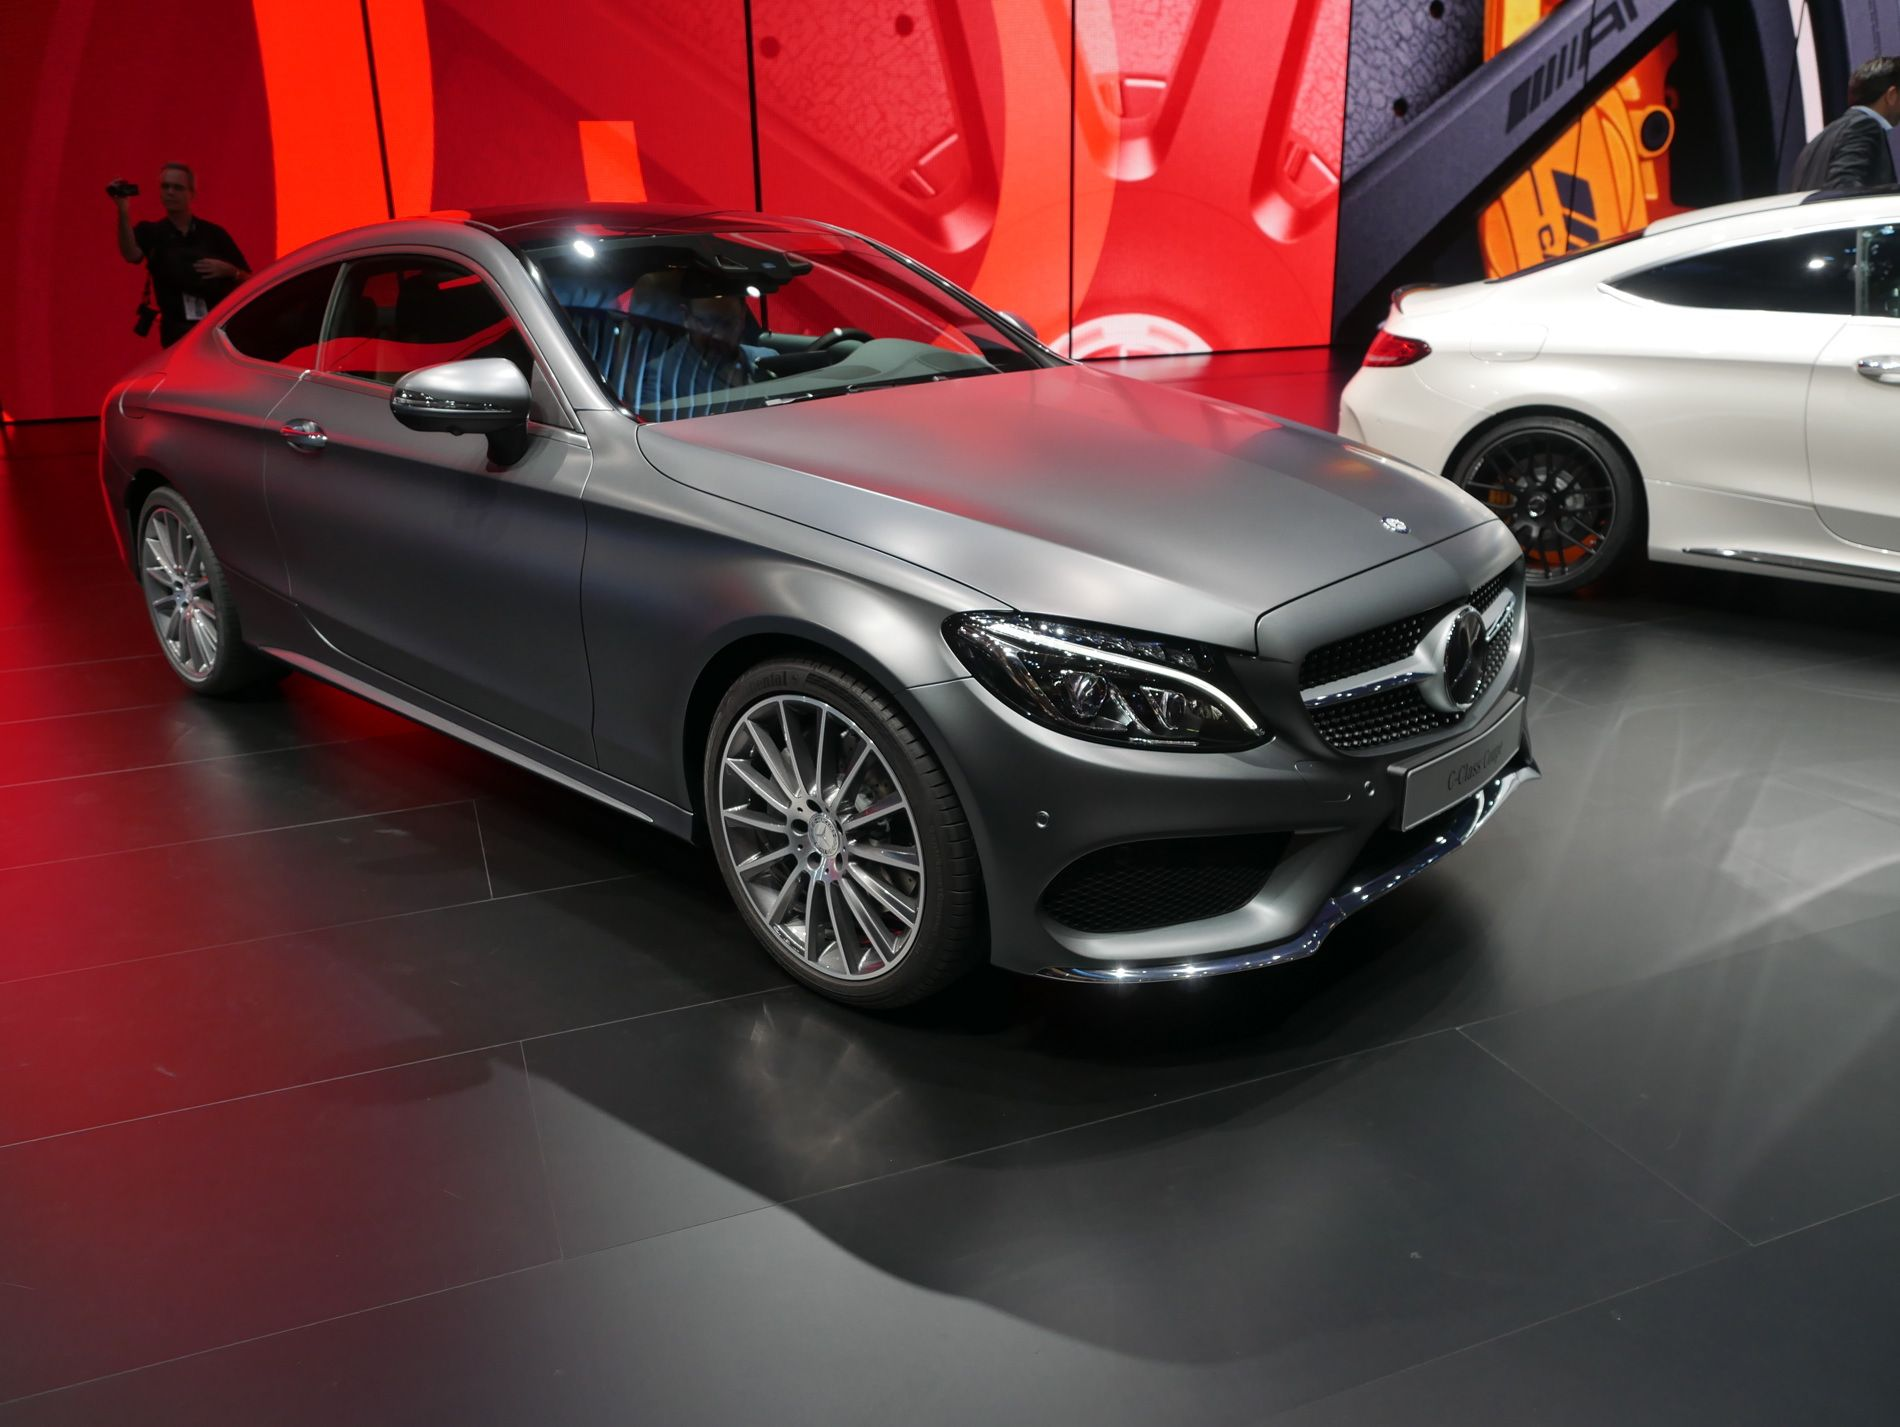 Image Result For Matte Grey Mercedes C Class Coupe With Images